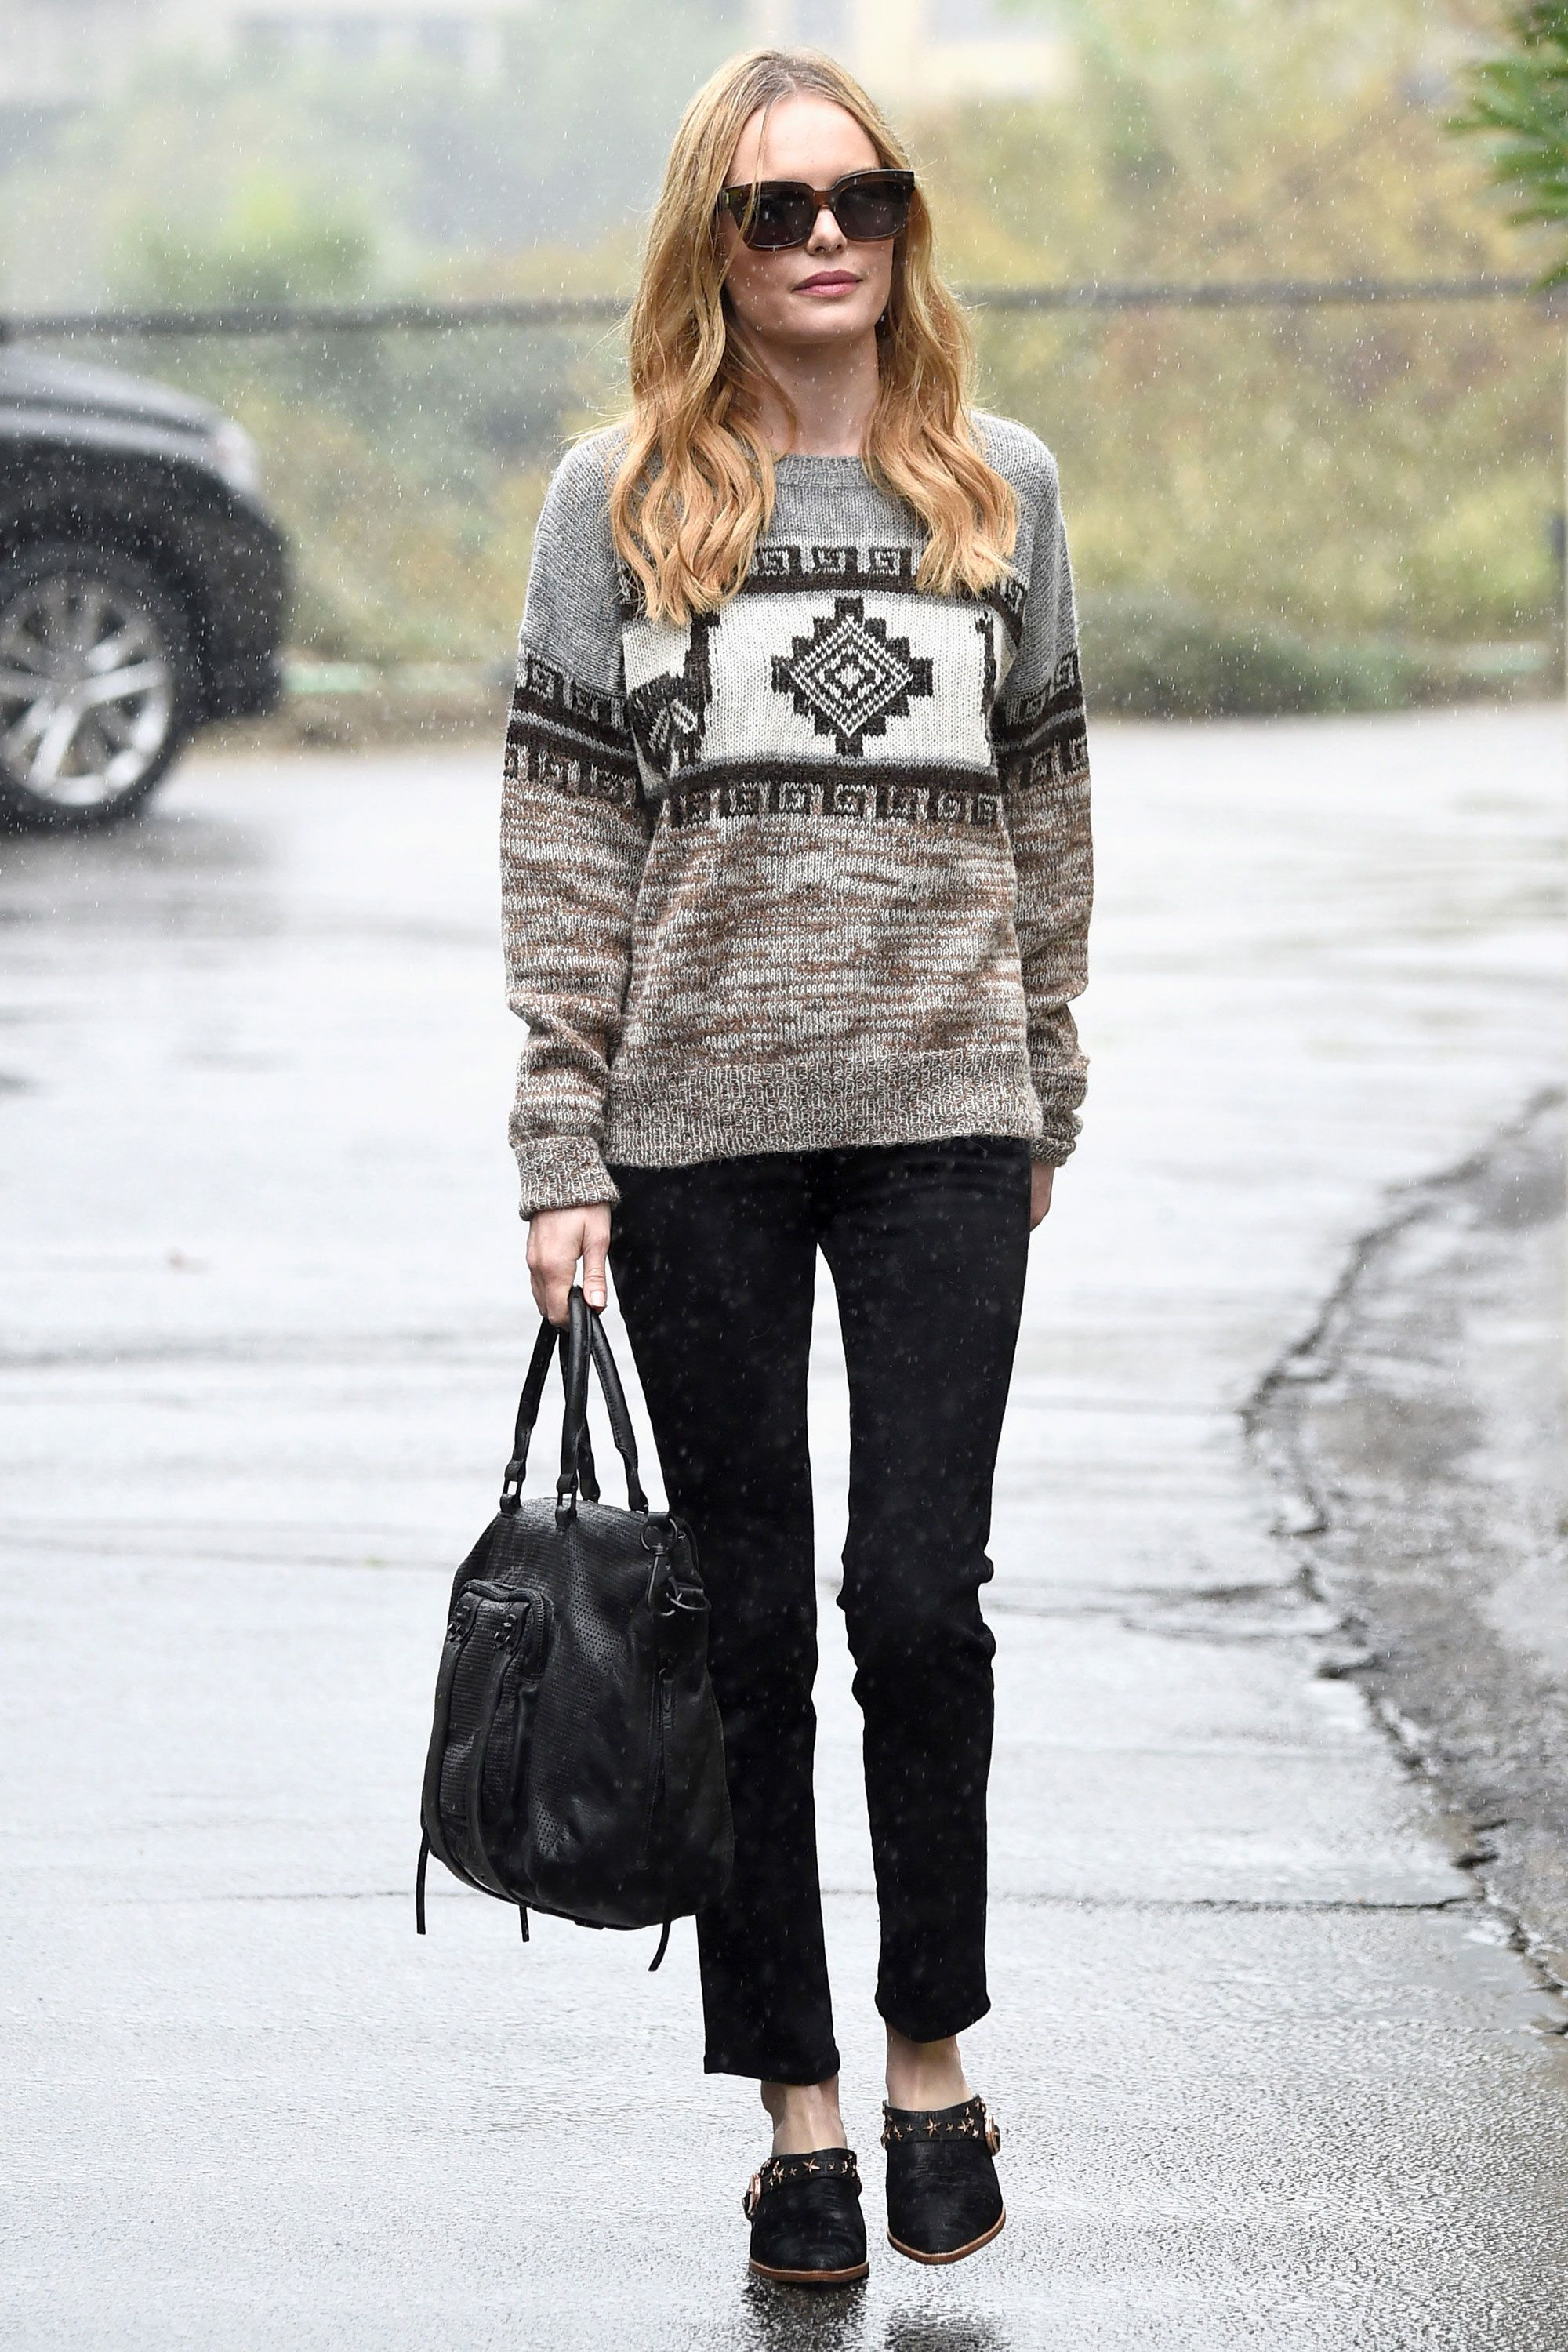 How does one accessorize with snow flurries? Take a cue from Bosworth and thrown on a toasty knit.